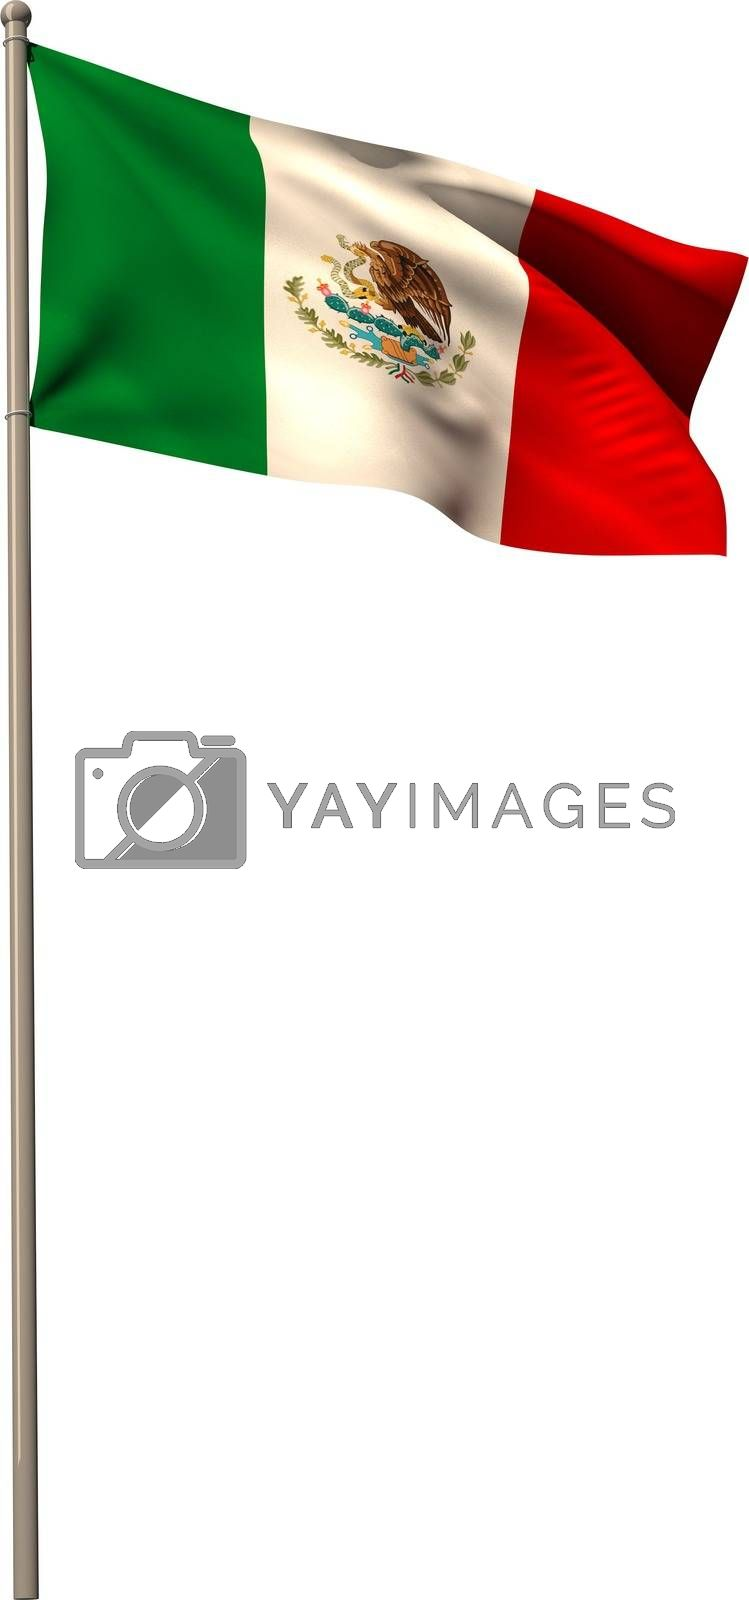 Royalty free image of Digitally generated mexico national flag by Wavebreakmedia